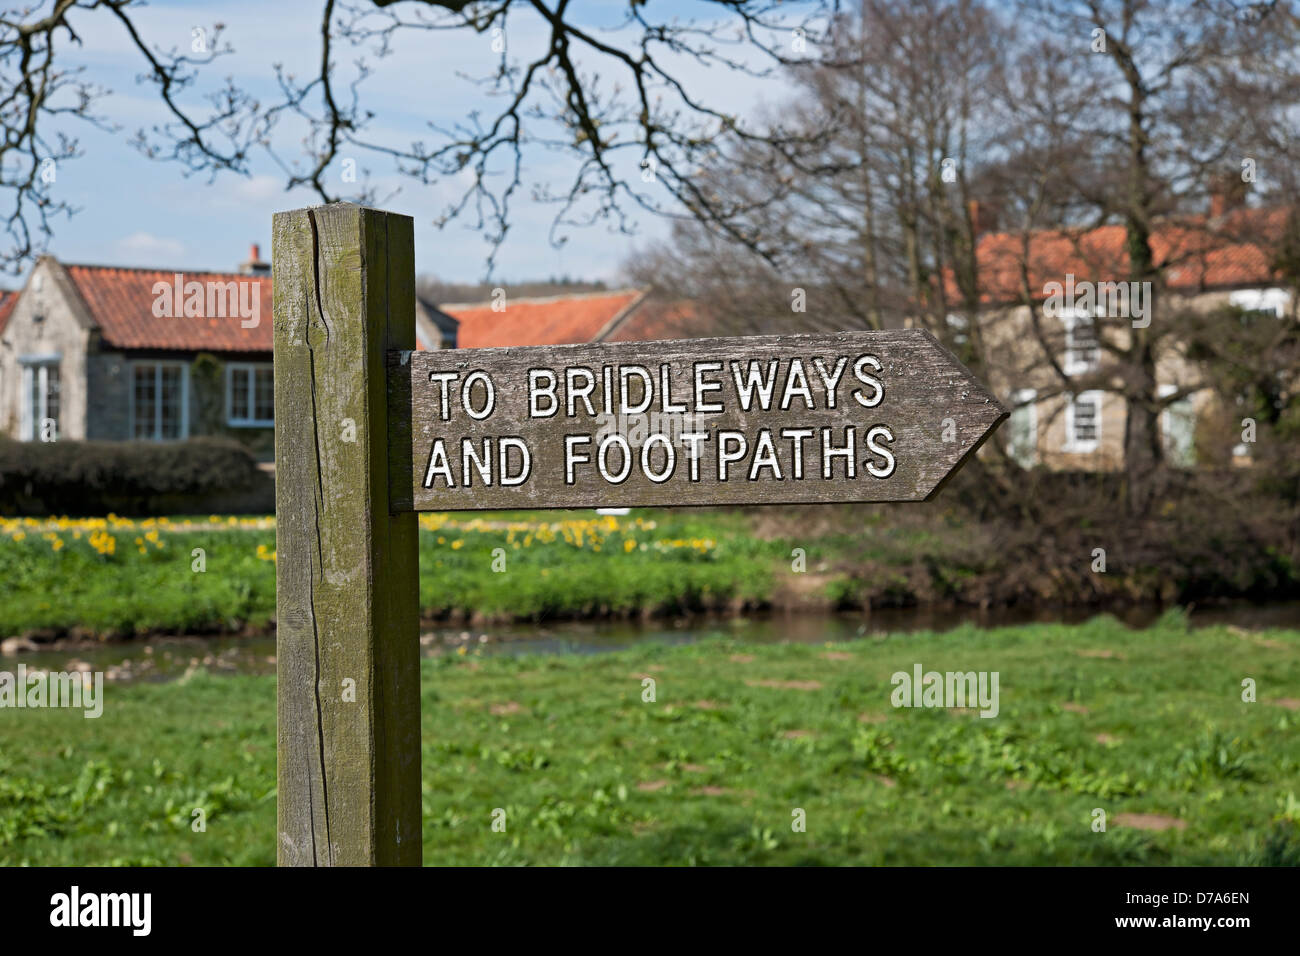 Wooden signpost pointing to bridleways and footpaths Sinnington North Yorkshire England UK United Kingdom GB Great - Stock Image